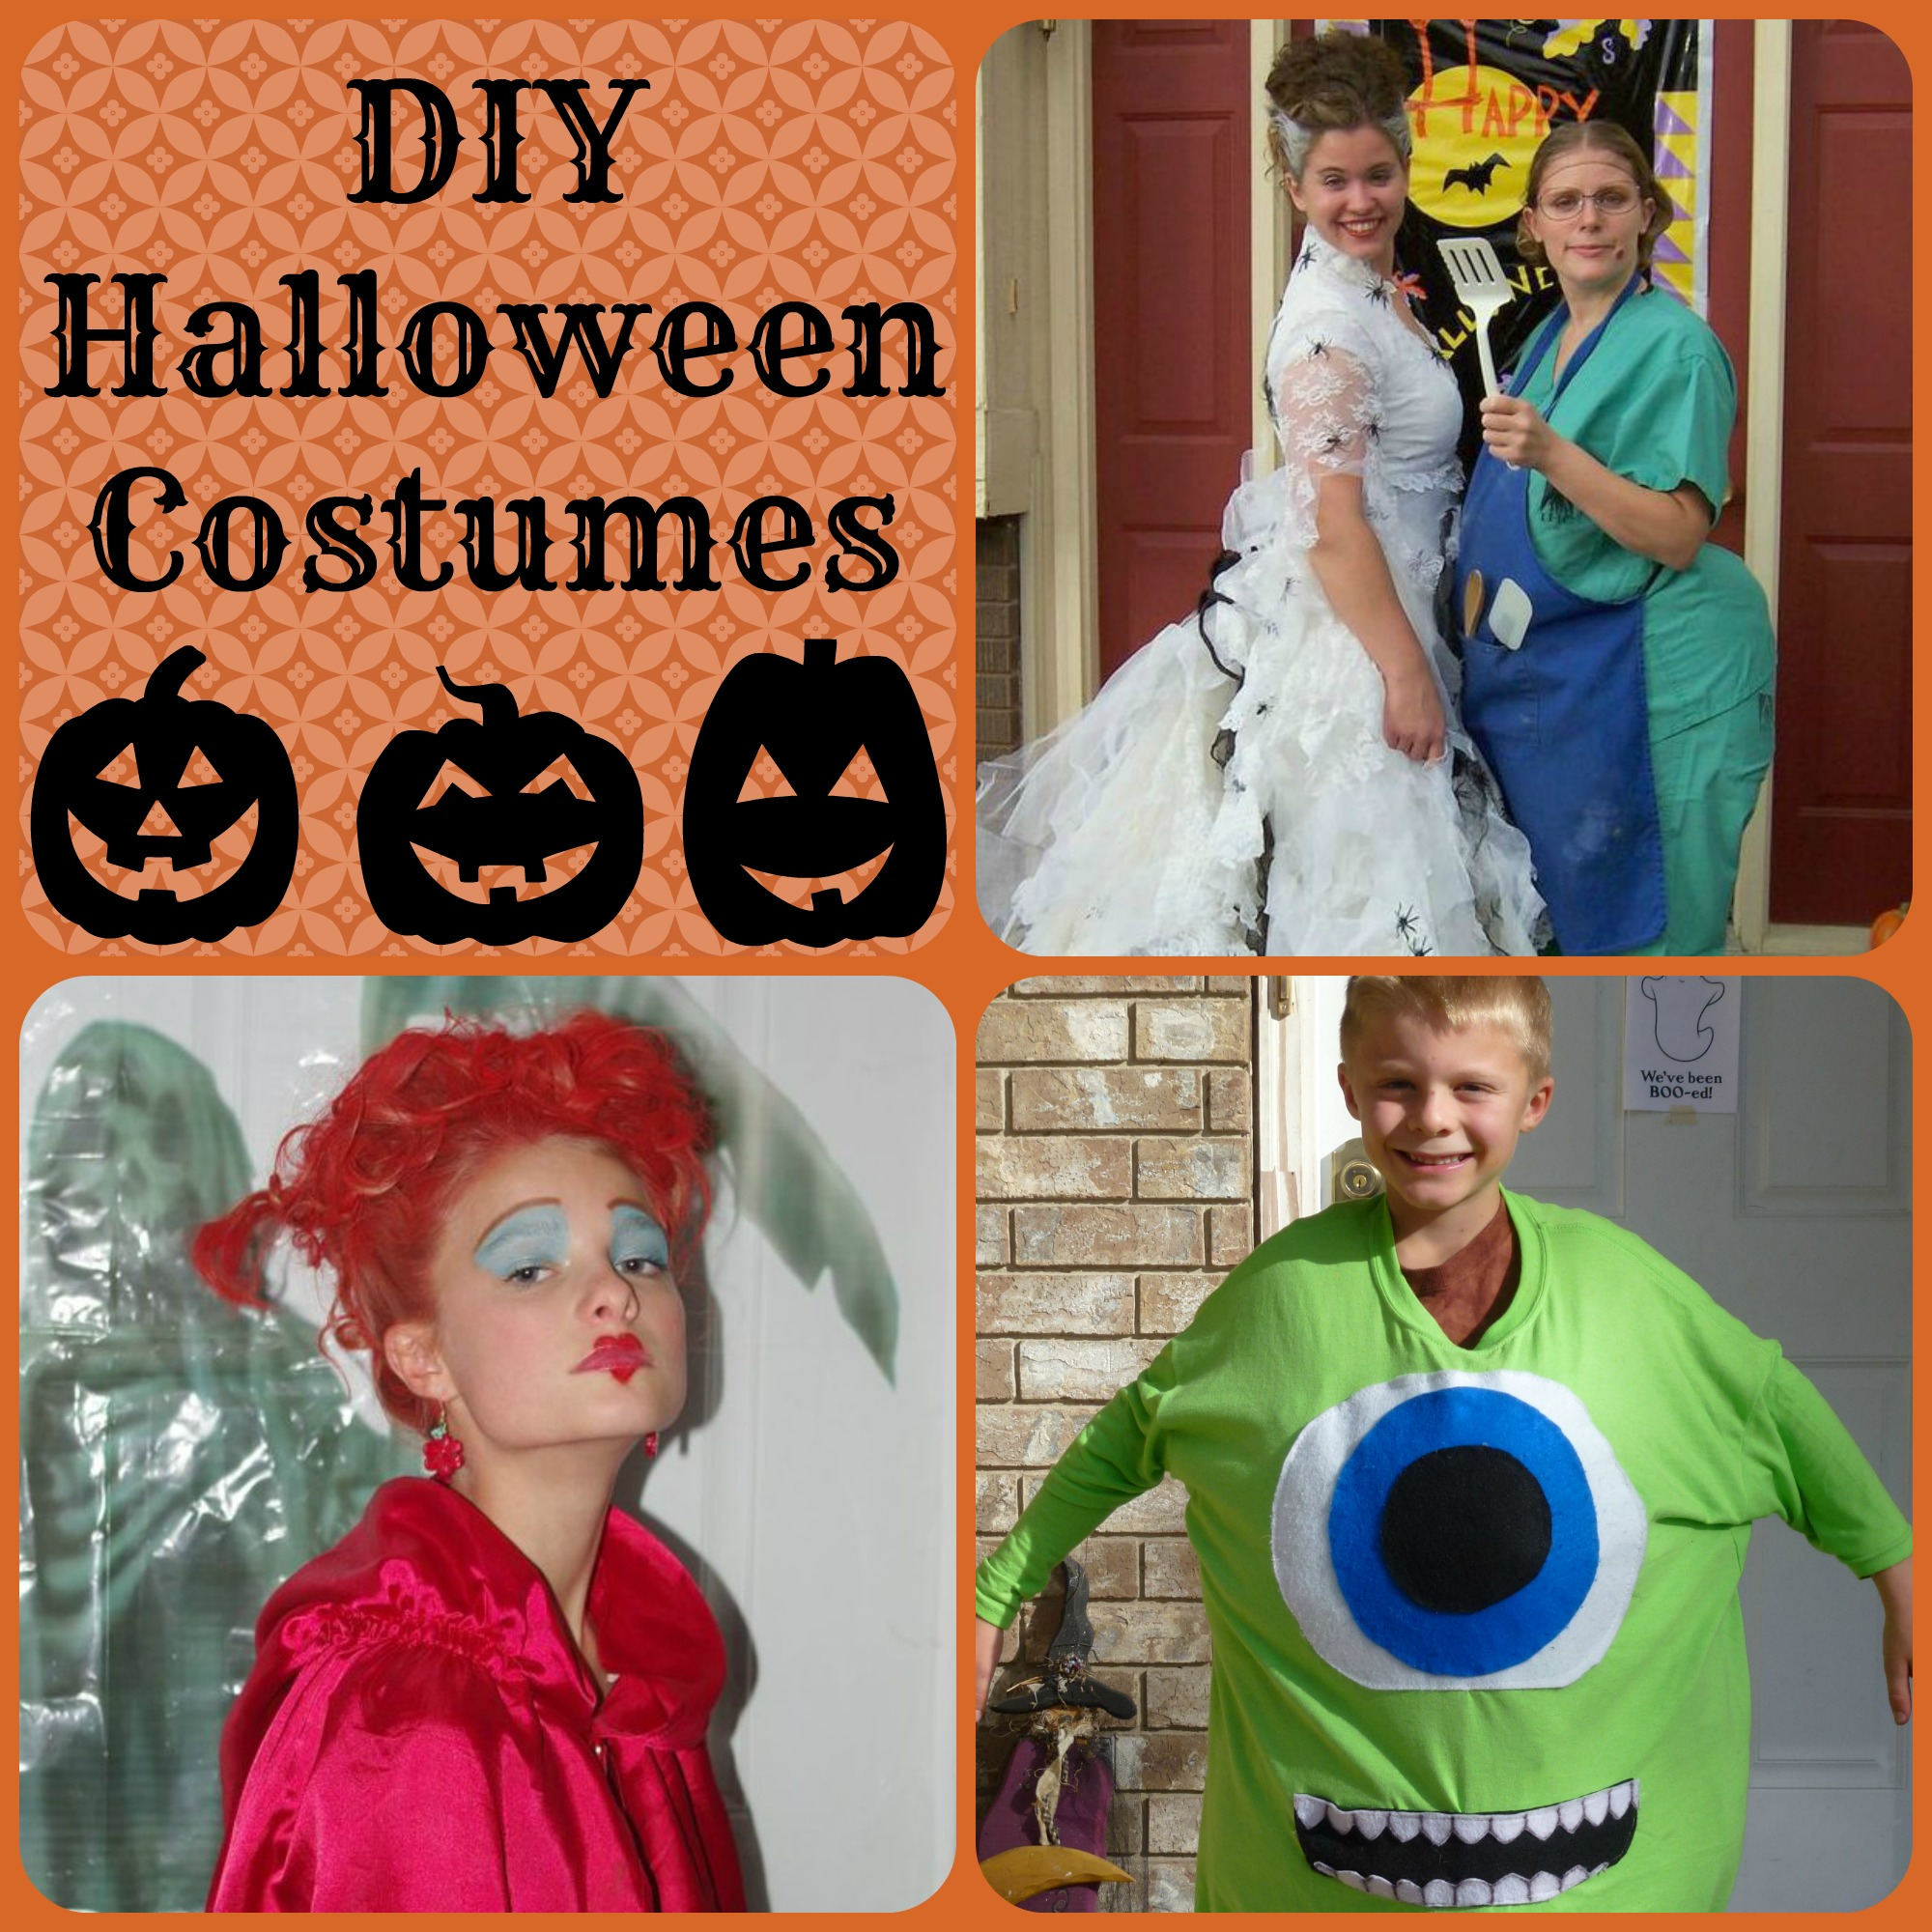 diy halloween costumes top posts in 2013 events to celebrate 30948